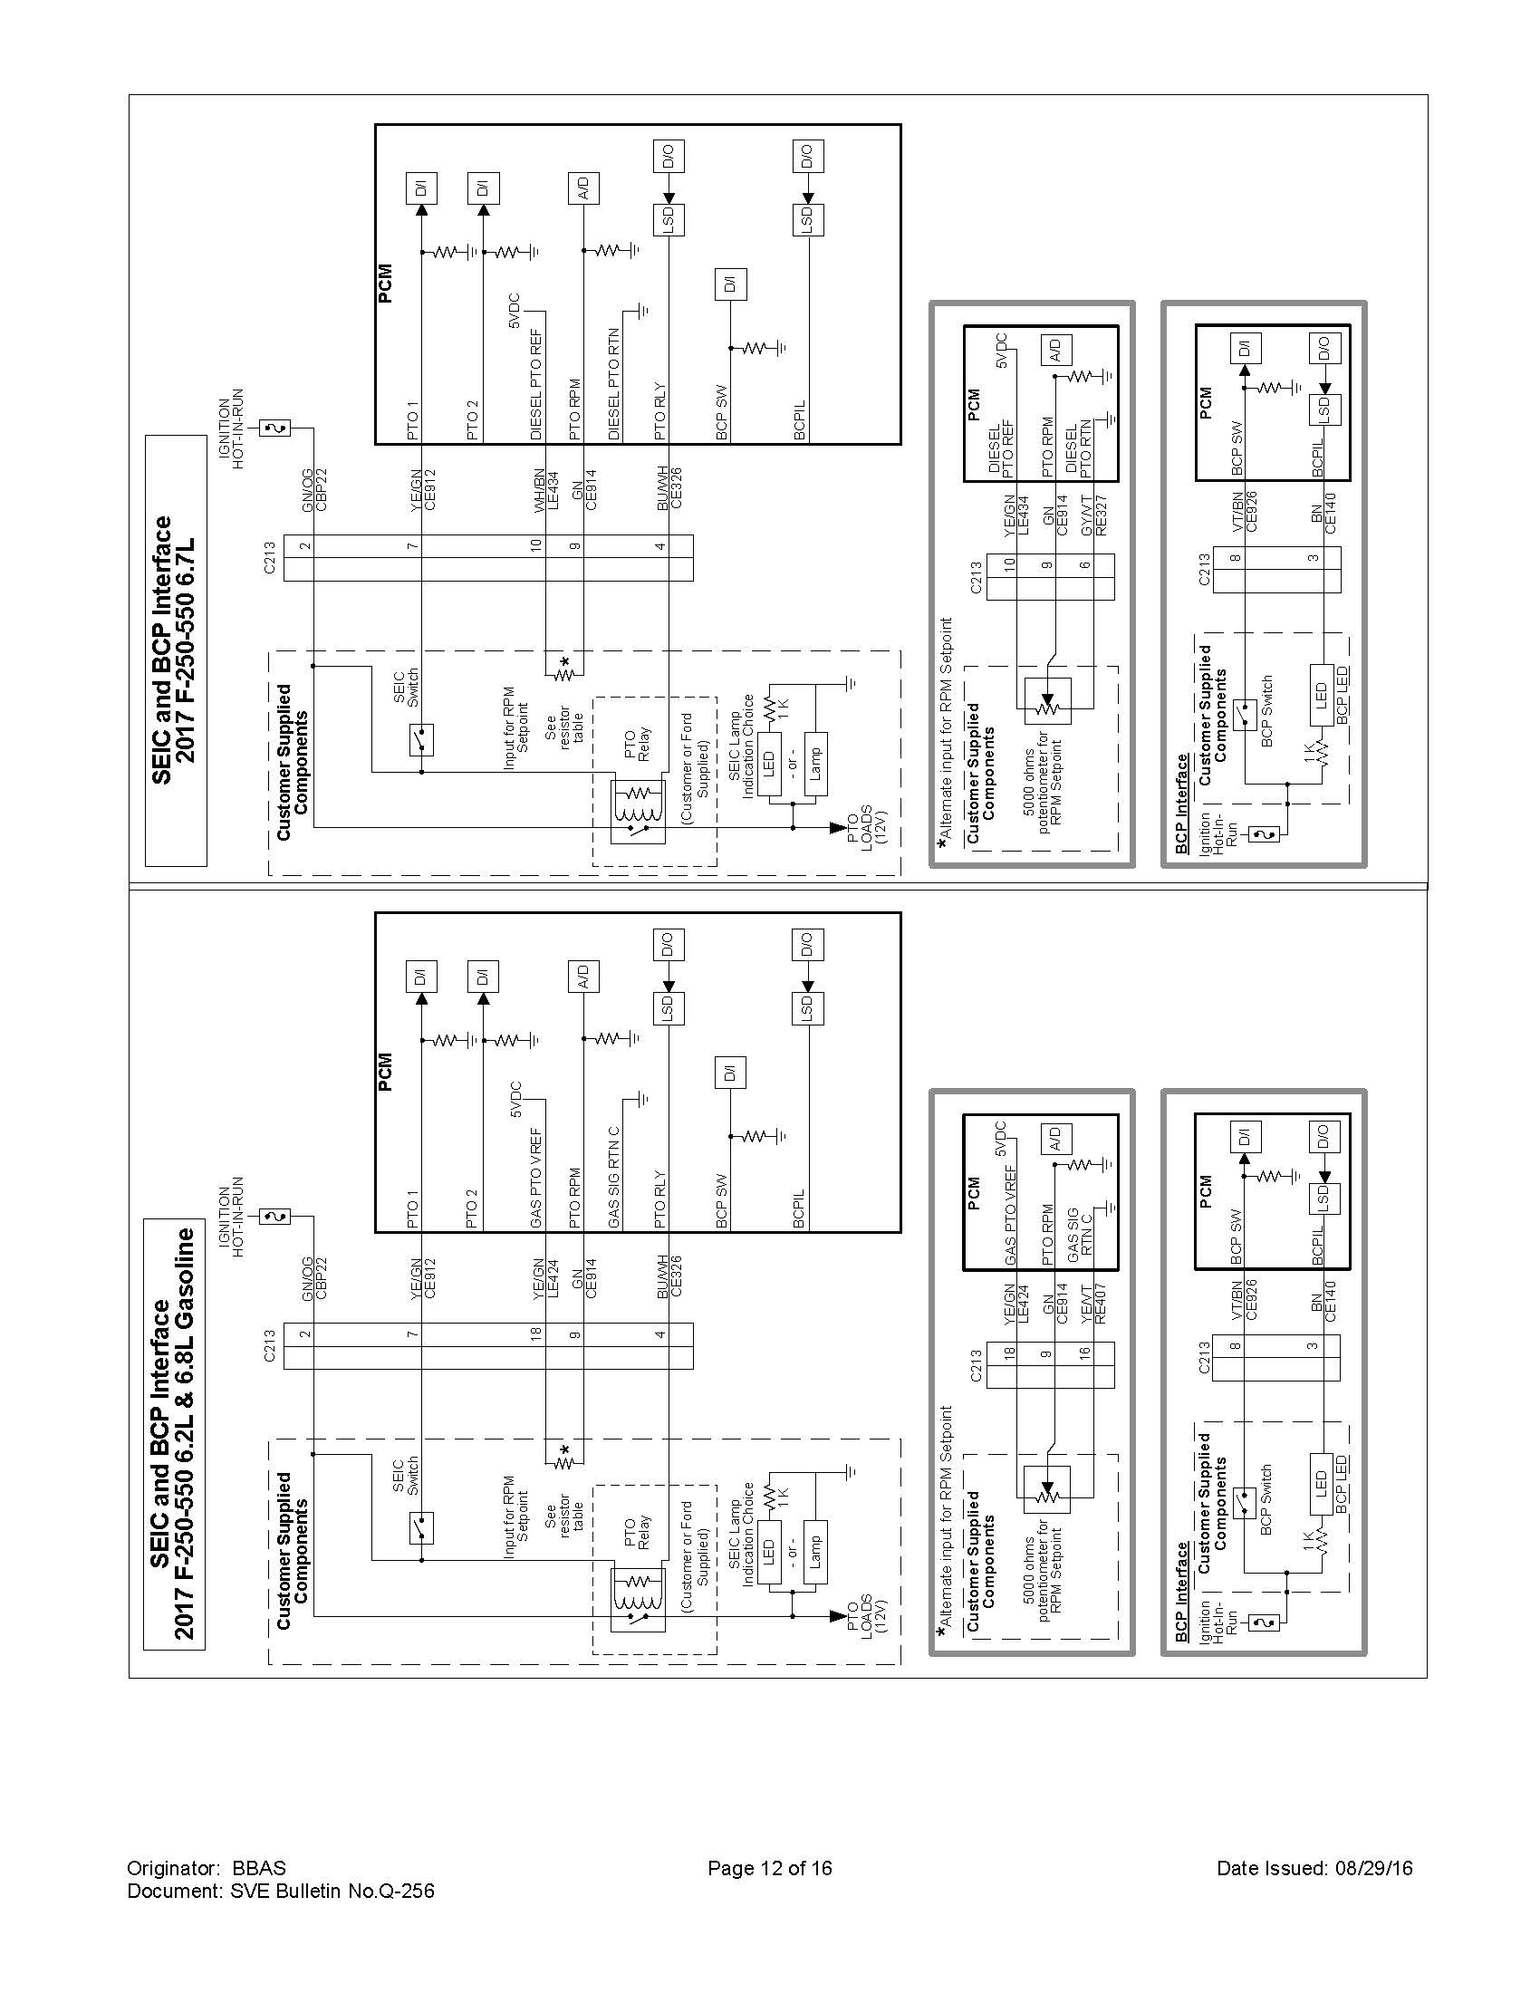 Ford 1715 Tractor Wiring Diagram - Wiring Diagram Sys  Ford Tractor Wiring Diagram on ford 3000 parts diagram, 1710 ford tractor parts, 1710 ford tractor clutch, 1710 ford tractor wheels, ford motor starter wiring diagram, ford alternator wiring diagram, 1710 ford new holland wiring diagram, ford starter solenoid wiring diagram, ford 1710 ignition wiring diagram,